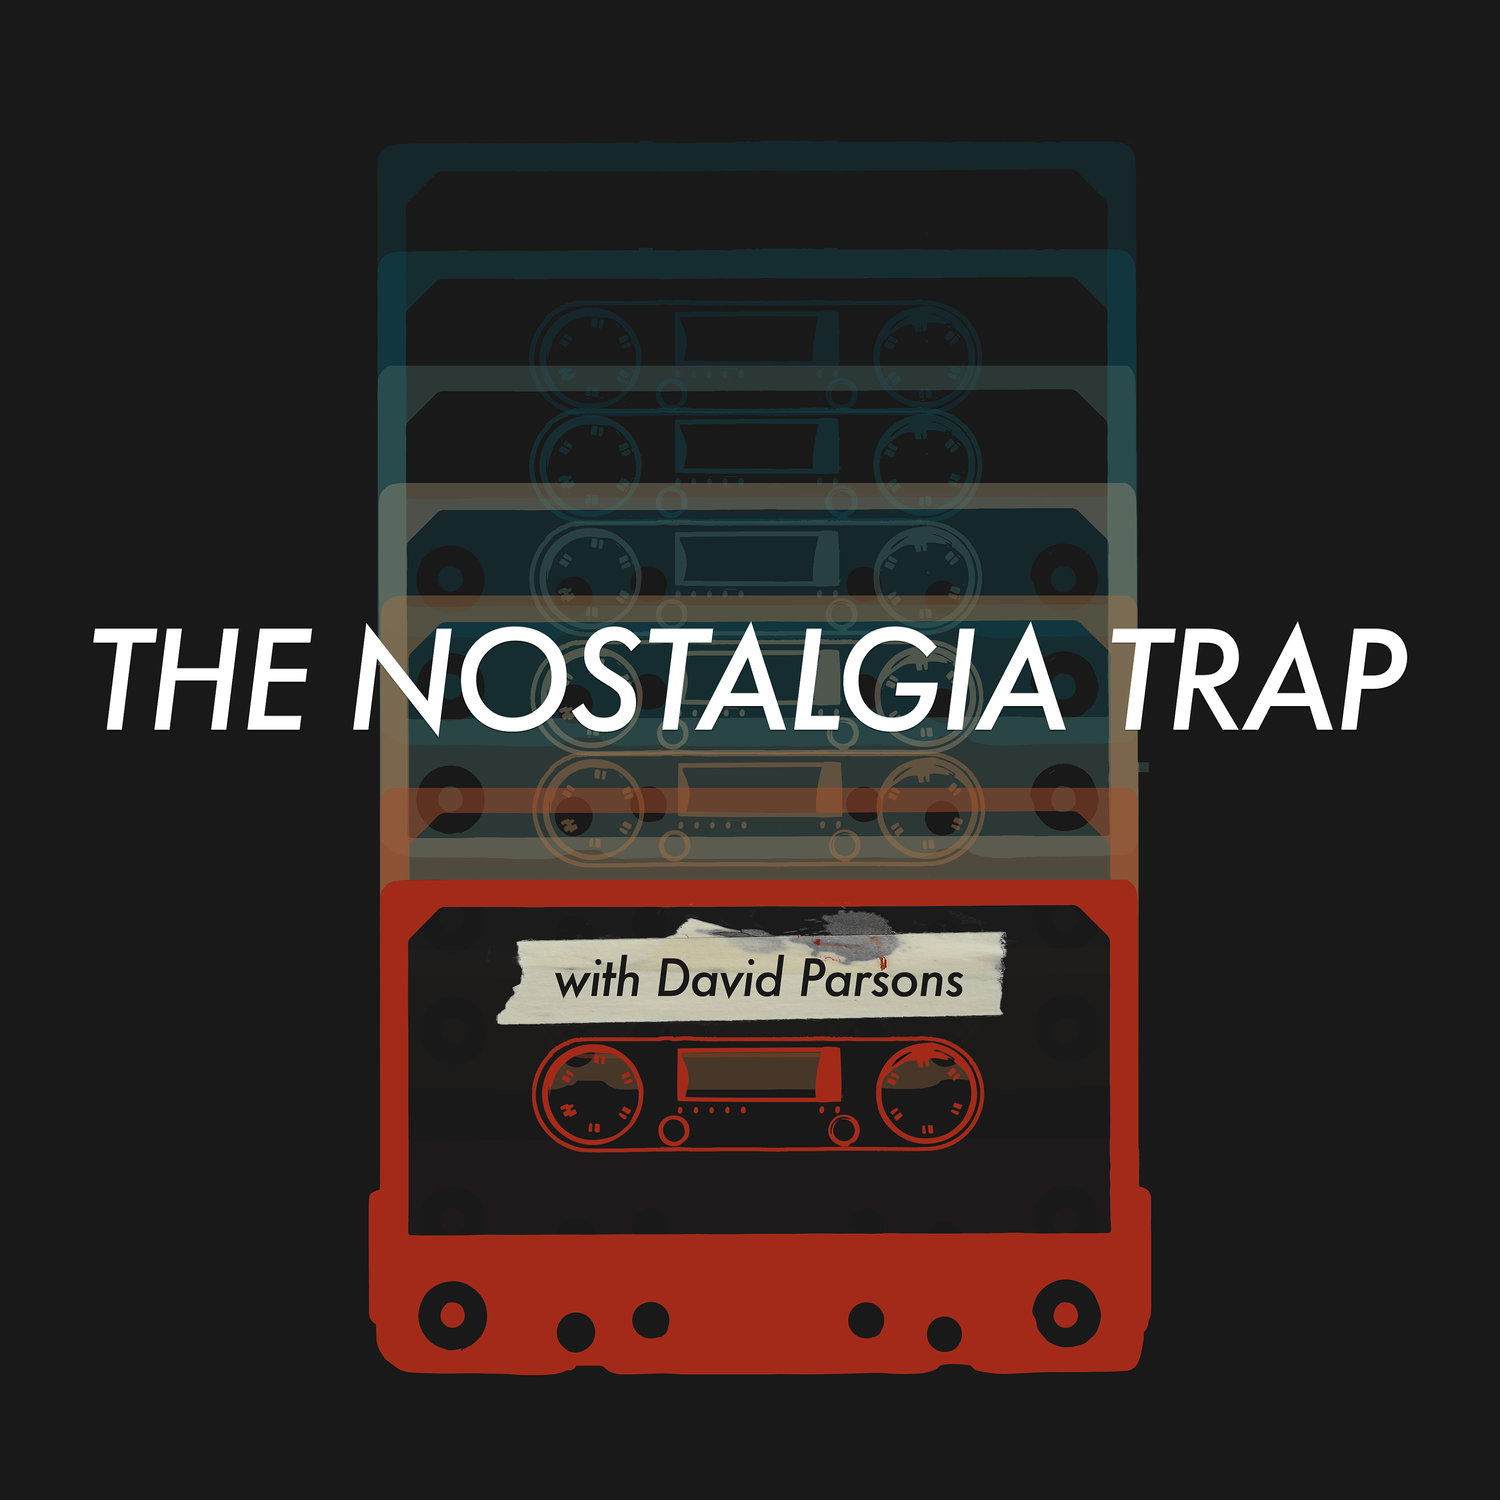 The Nostalgia Trap